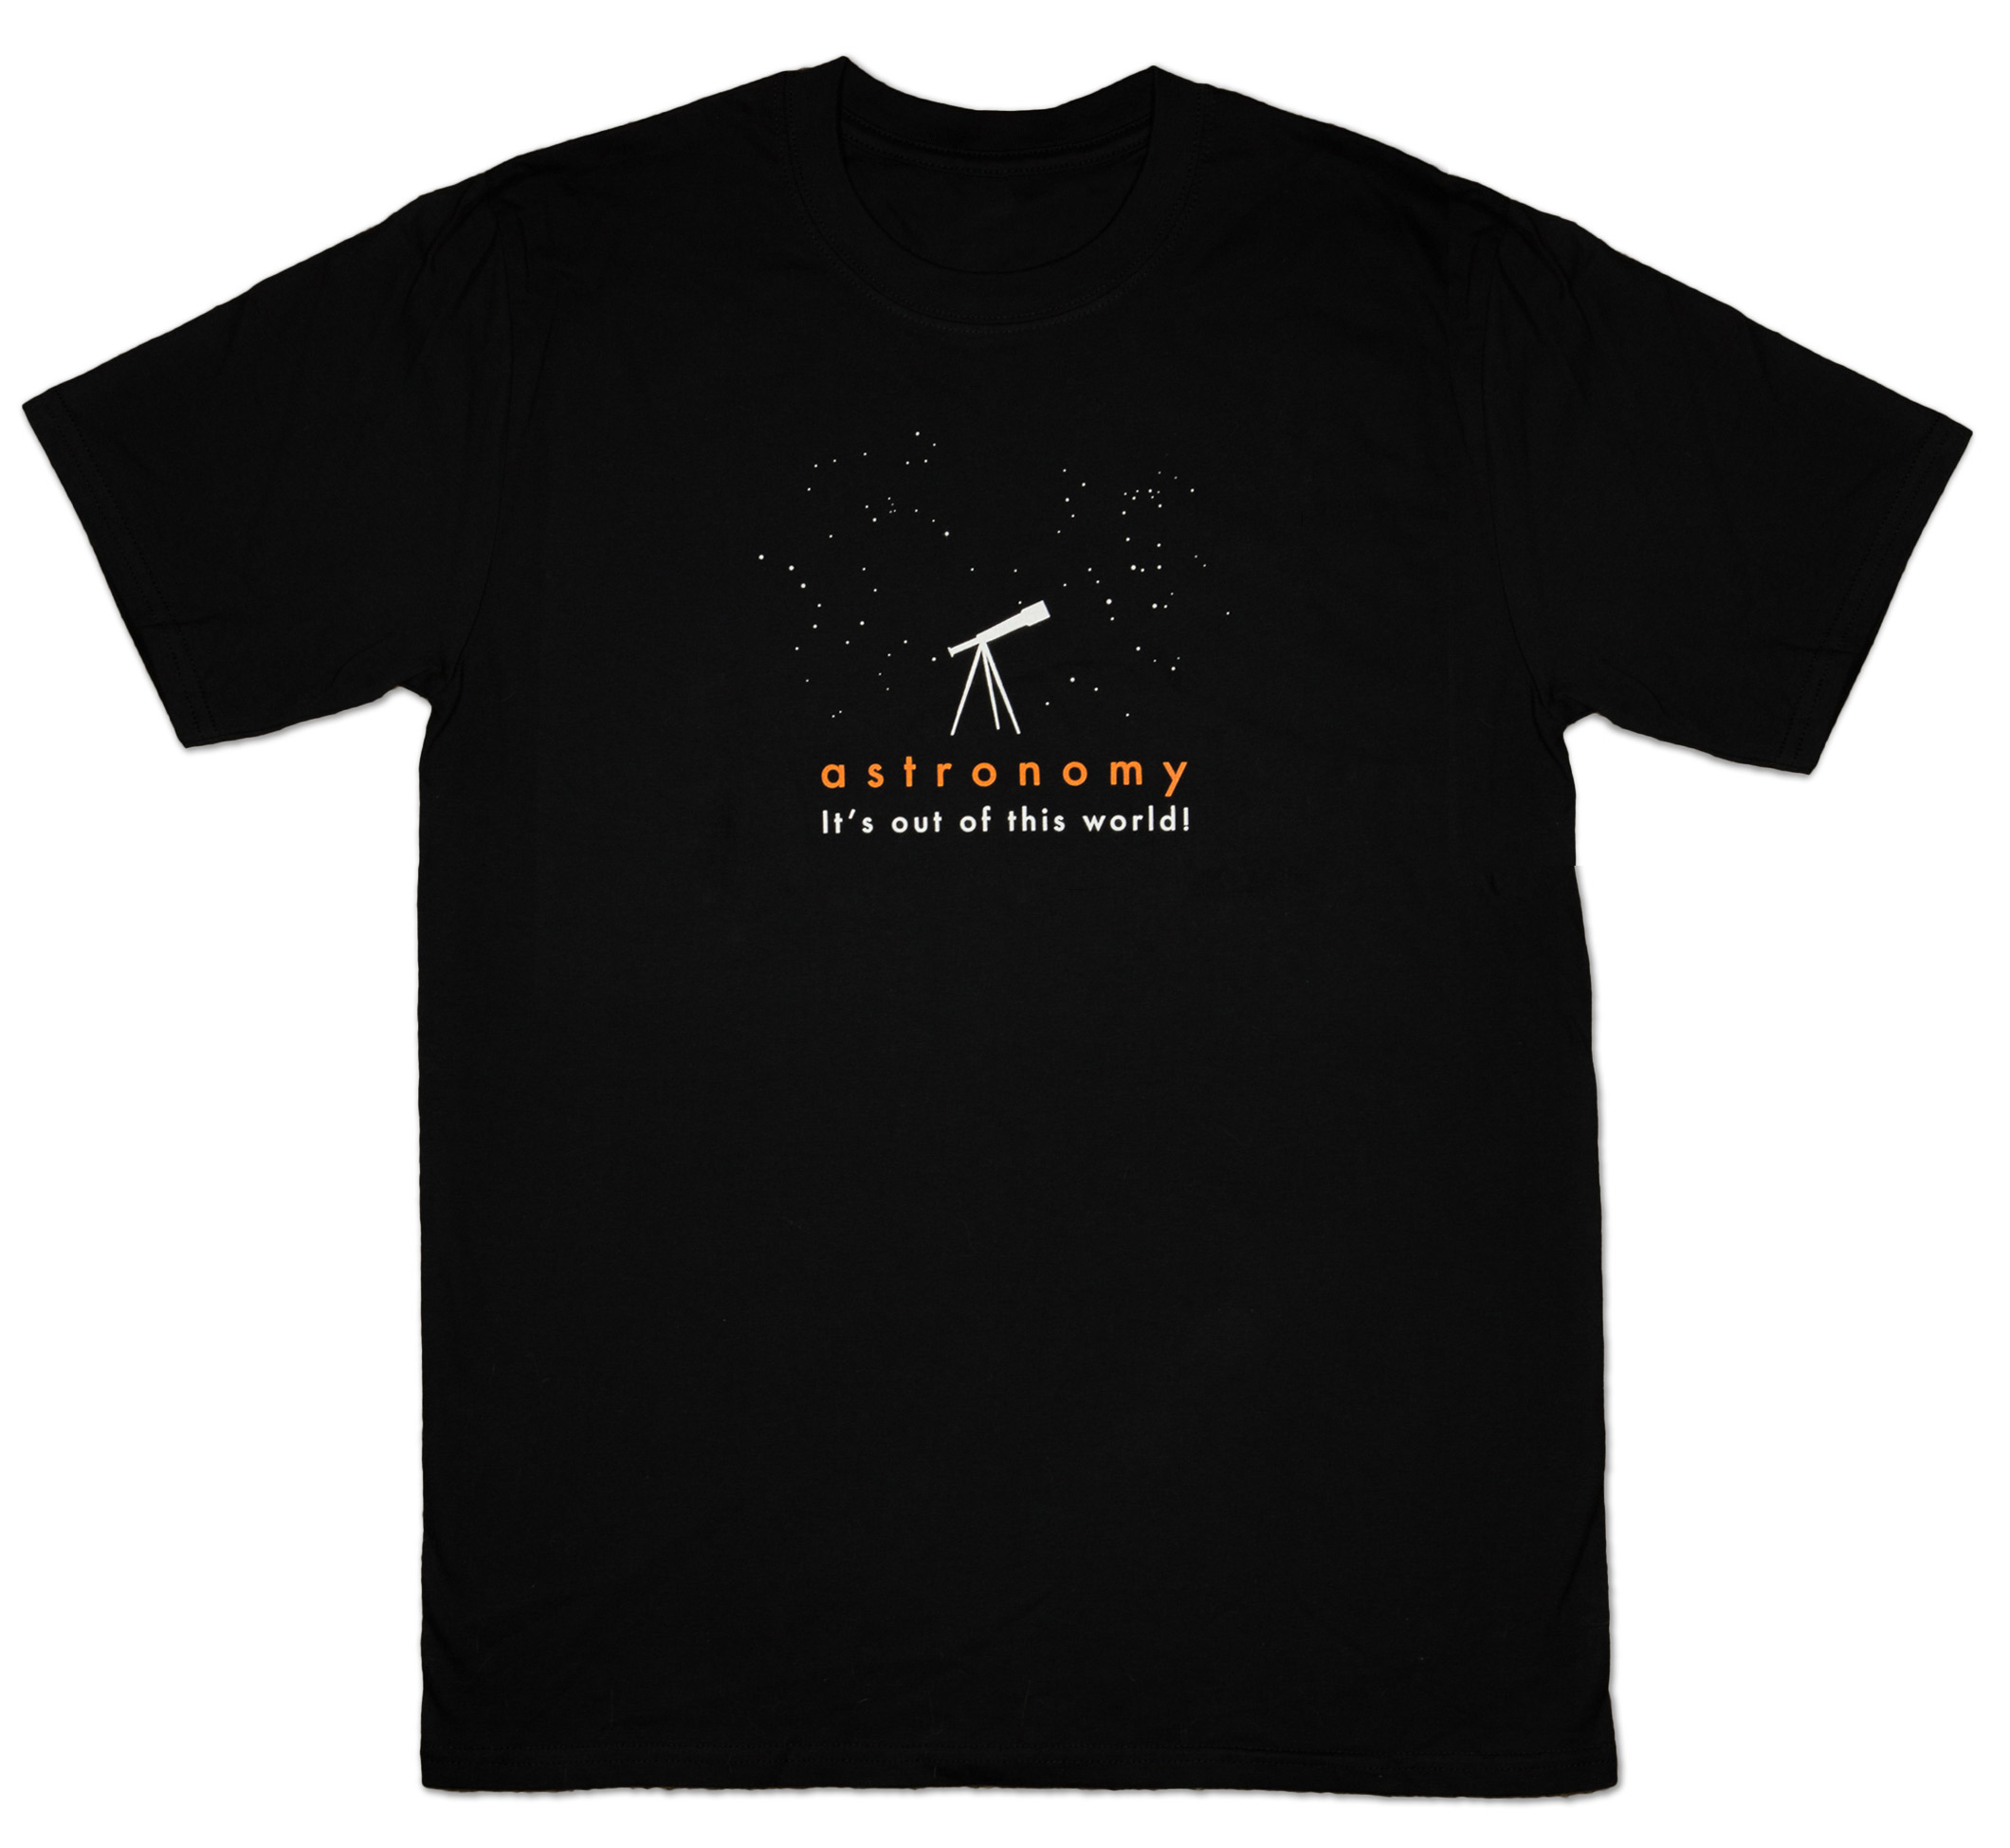 astronomy clothing line - photo #2